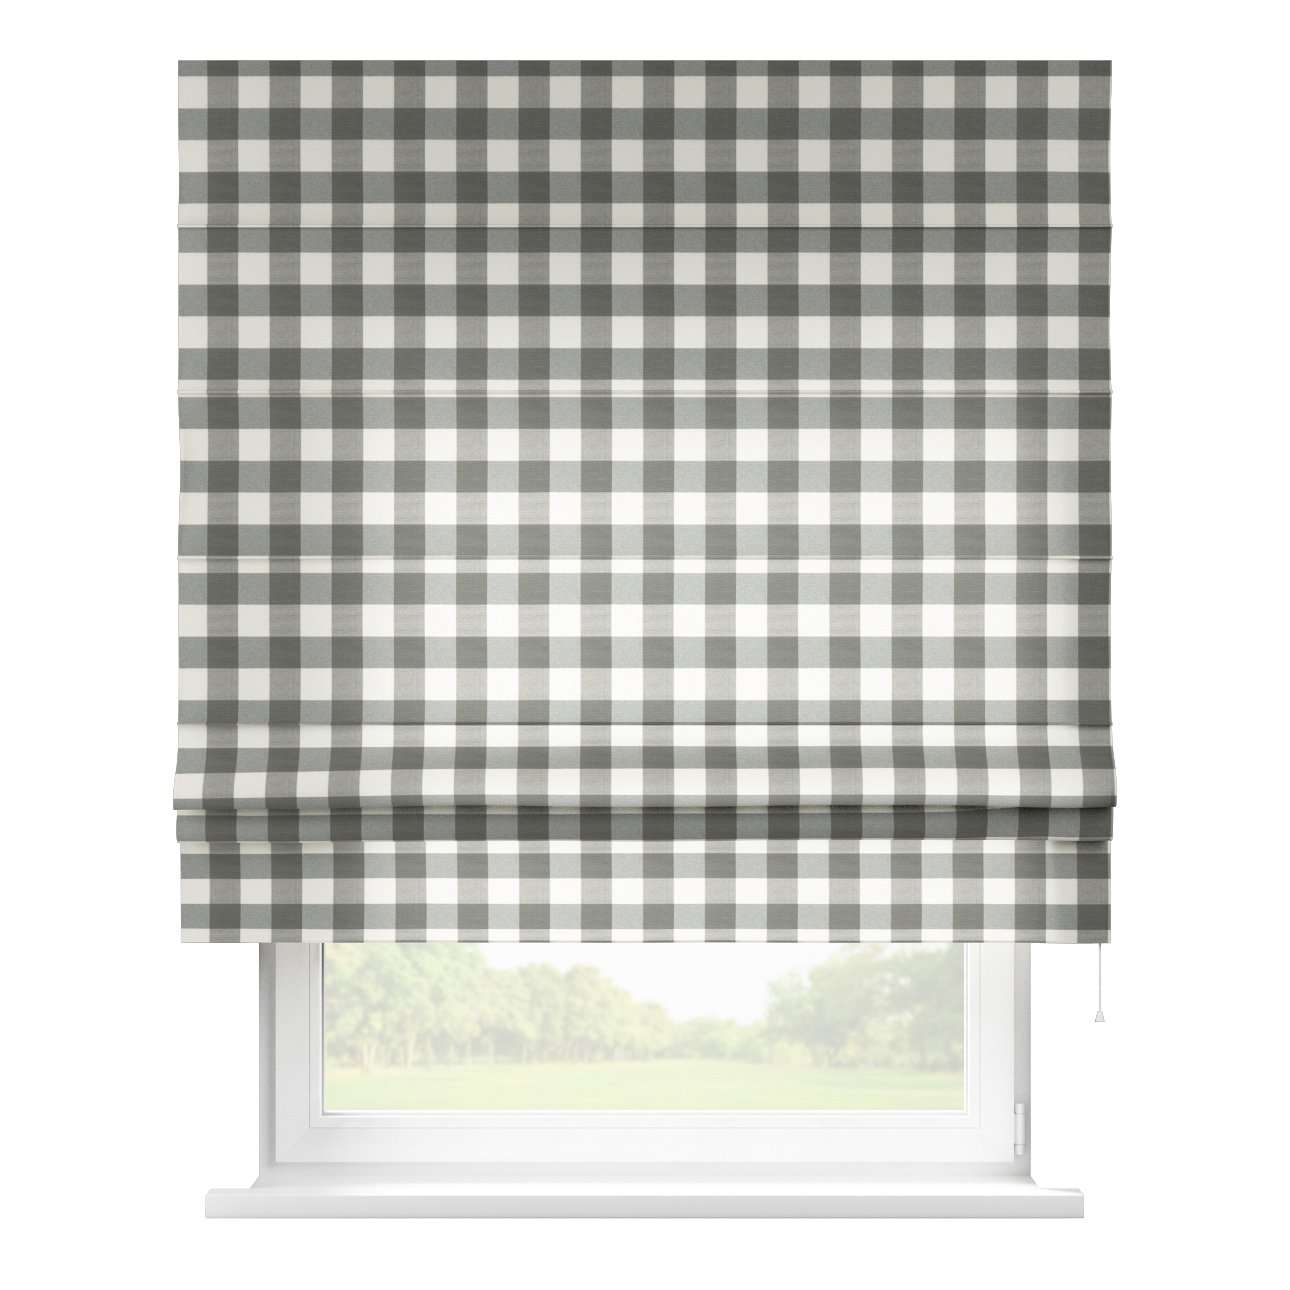 Padva roman blind  in collection Quadro, fabric: 136-13